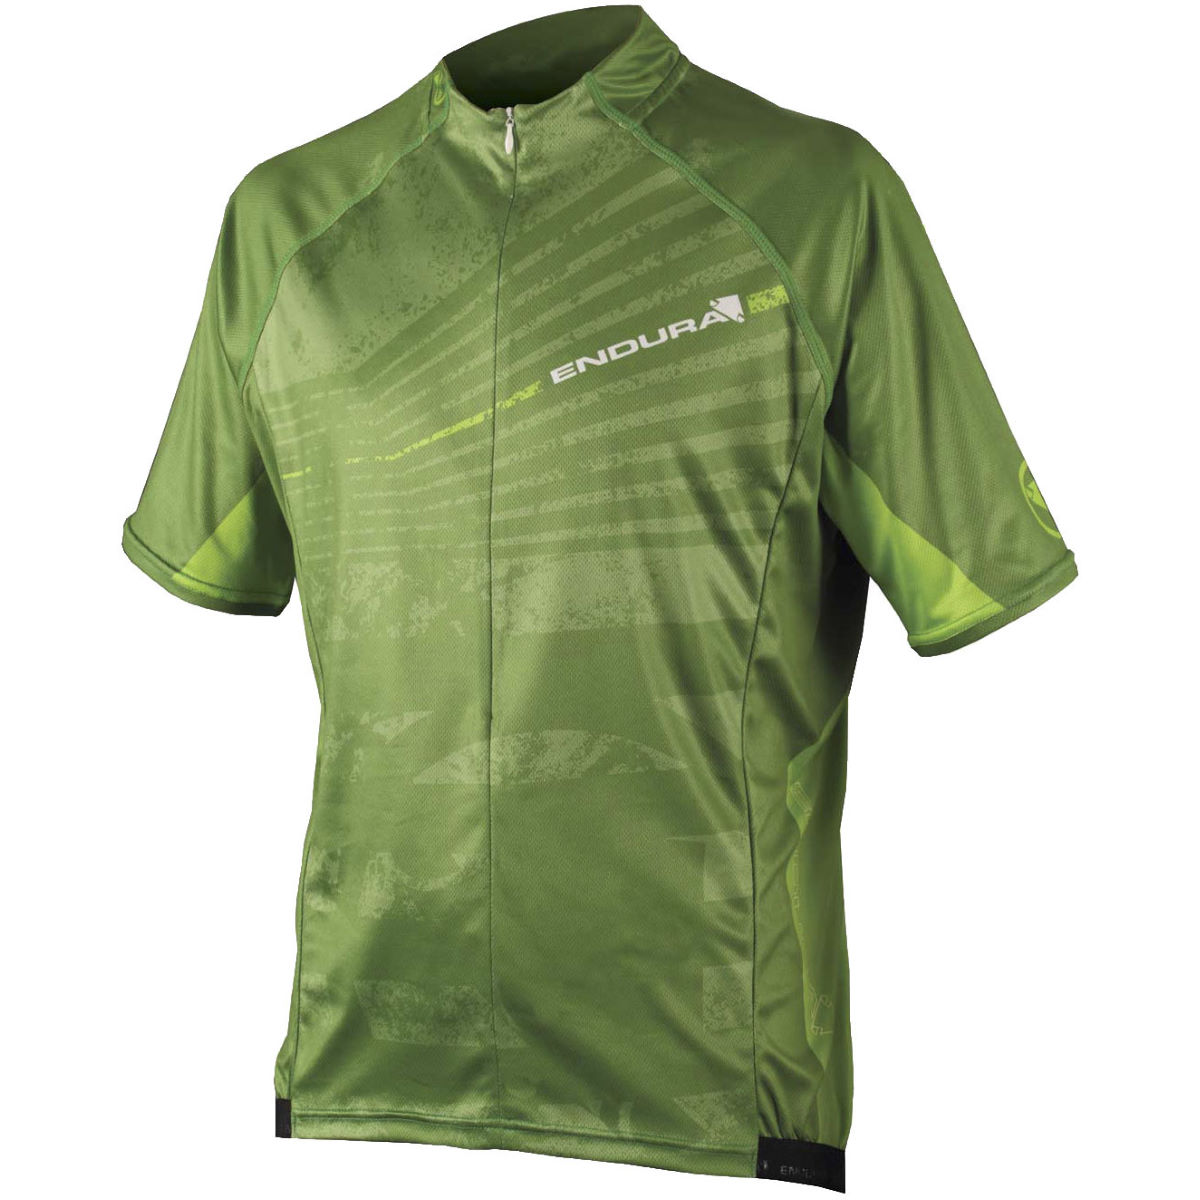 Endura Hummvee Ray Jersey - S Green | Short Sleeve Cycling Jerseys